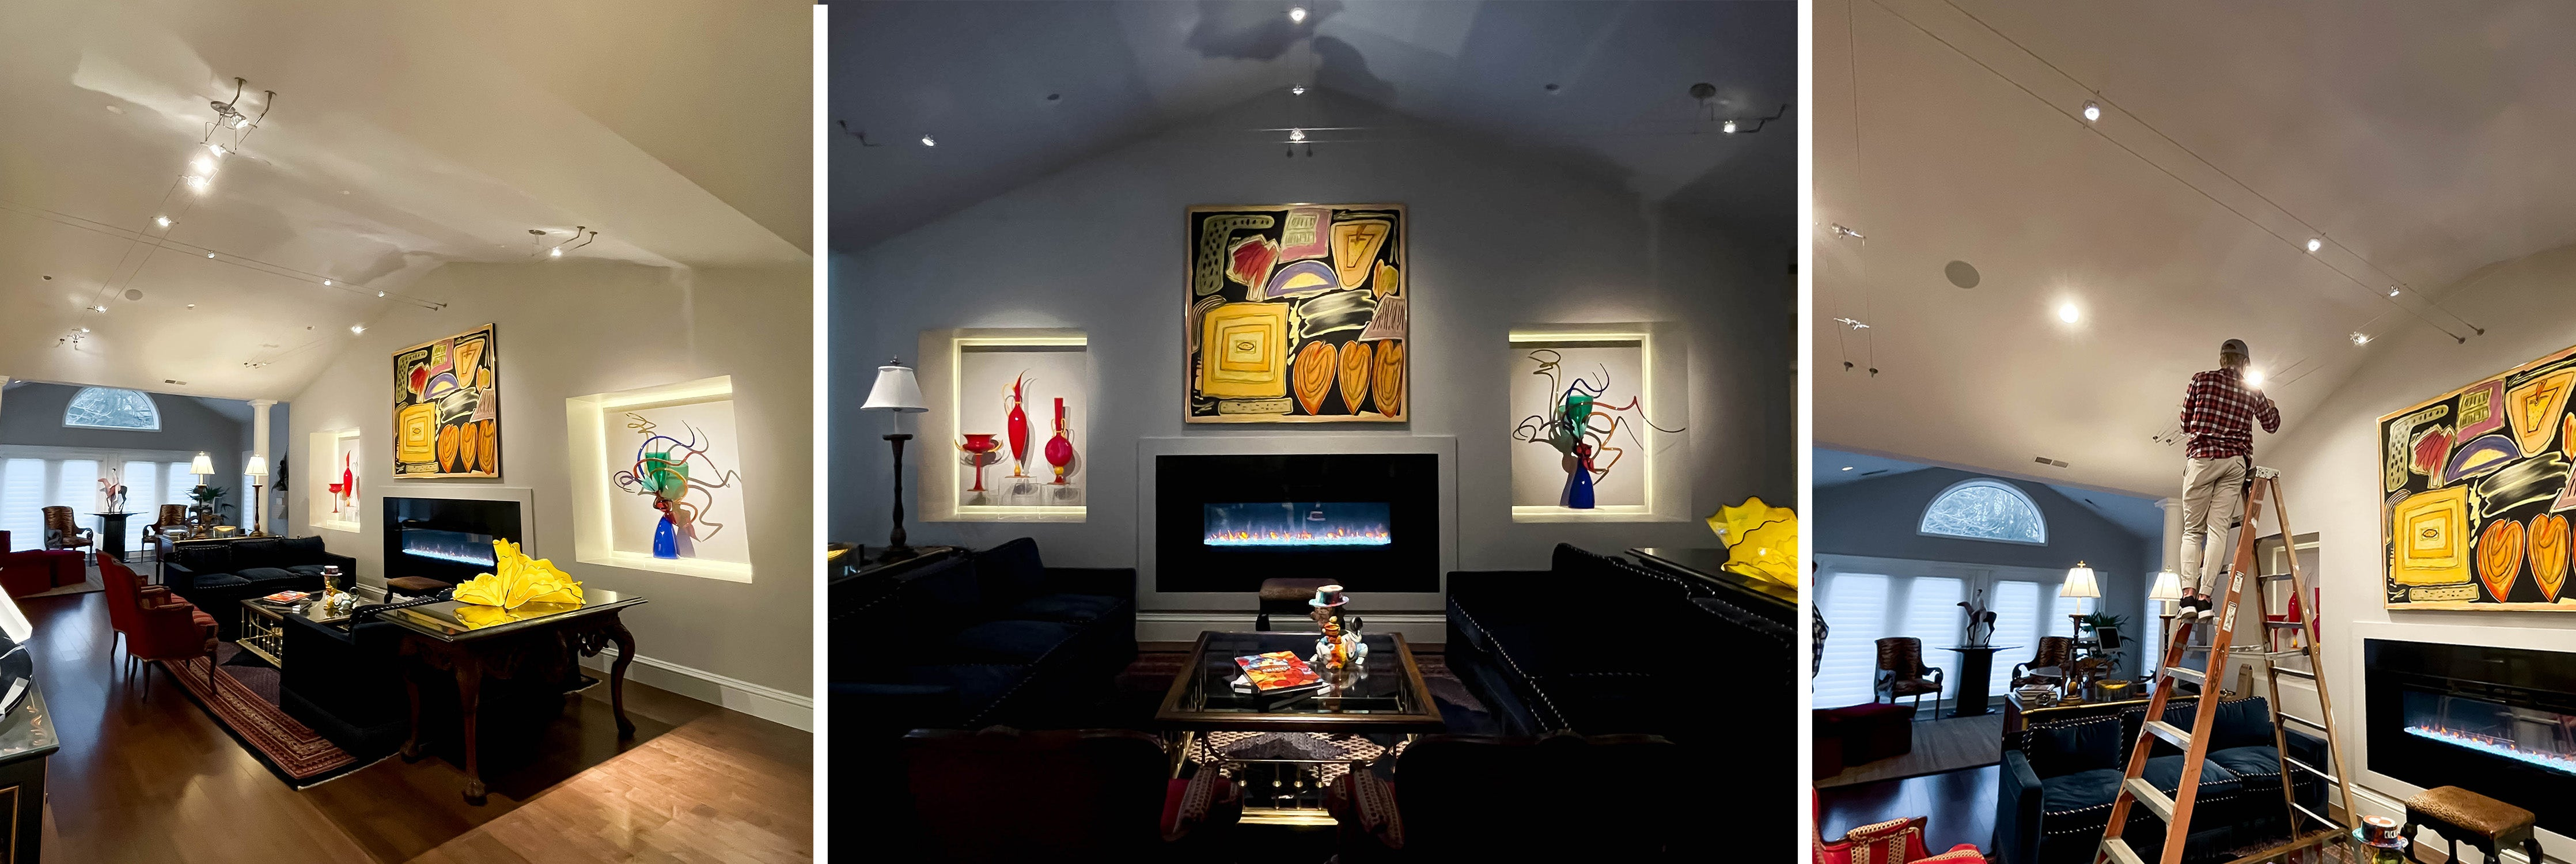 Lighting Design by Lighting and Bulbs Unlimited (Museum Home with gorgeous pieces of art and Kable lighting through the living room space)